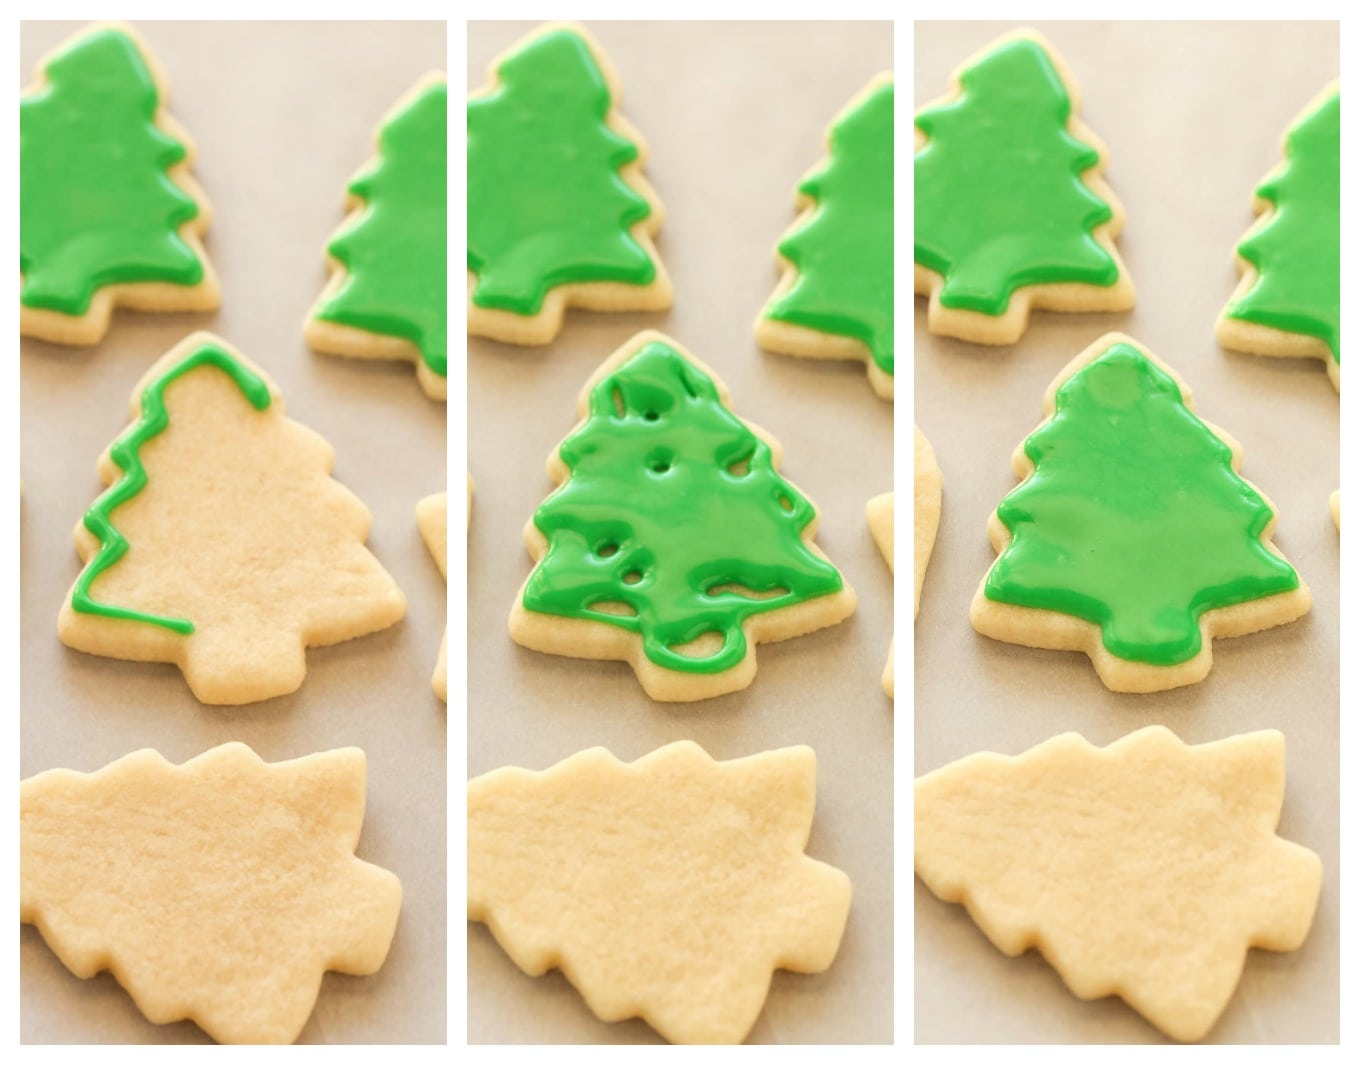 Super soft cut-out sugar cooSuper soft cut-out sugar cookies decorated with an easy icing. These Christmas Cut-Out Sugar Cookies are so fun to decorate and perfect for the holidays!kies decorated with an easy 4-ingredient icing. These Christmas Cut-Out Sugar Cookies are so fun to decorate and perfect for the holidays!